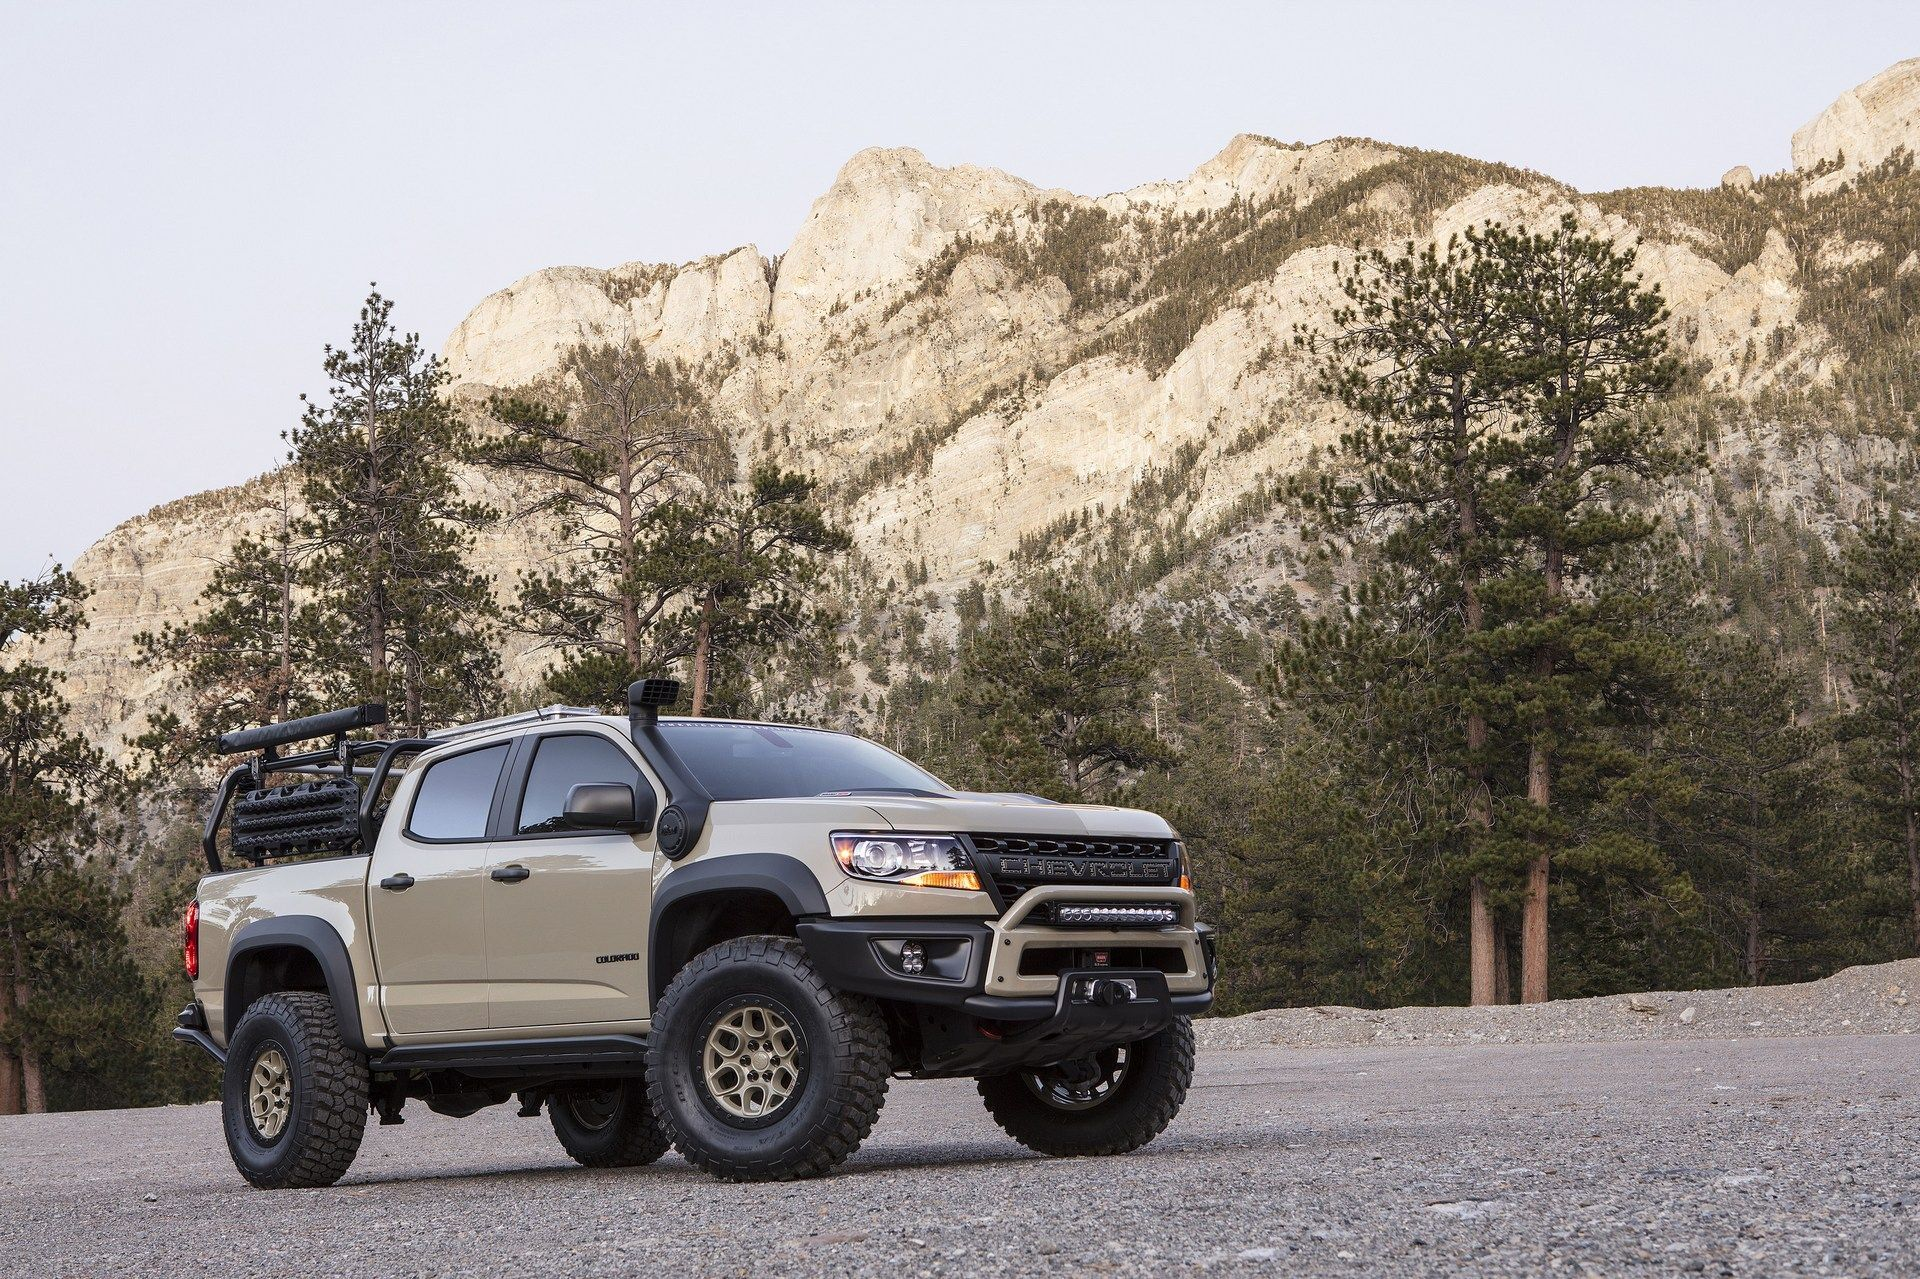 Chevrolet Colorado Zr2 Bison Coming To Tackle The Tacoma Trd Pro